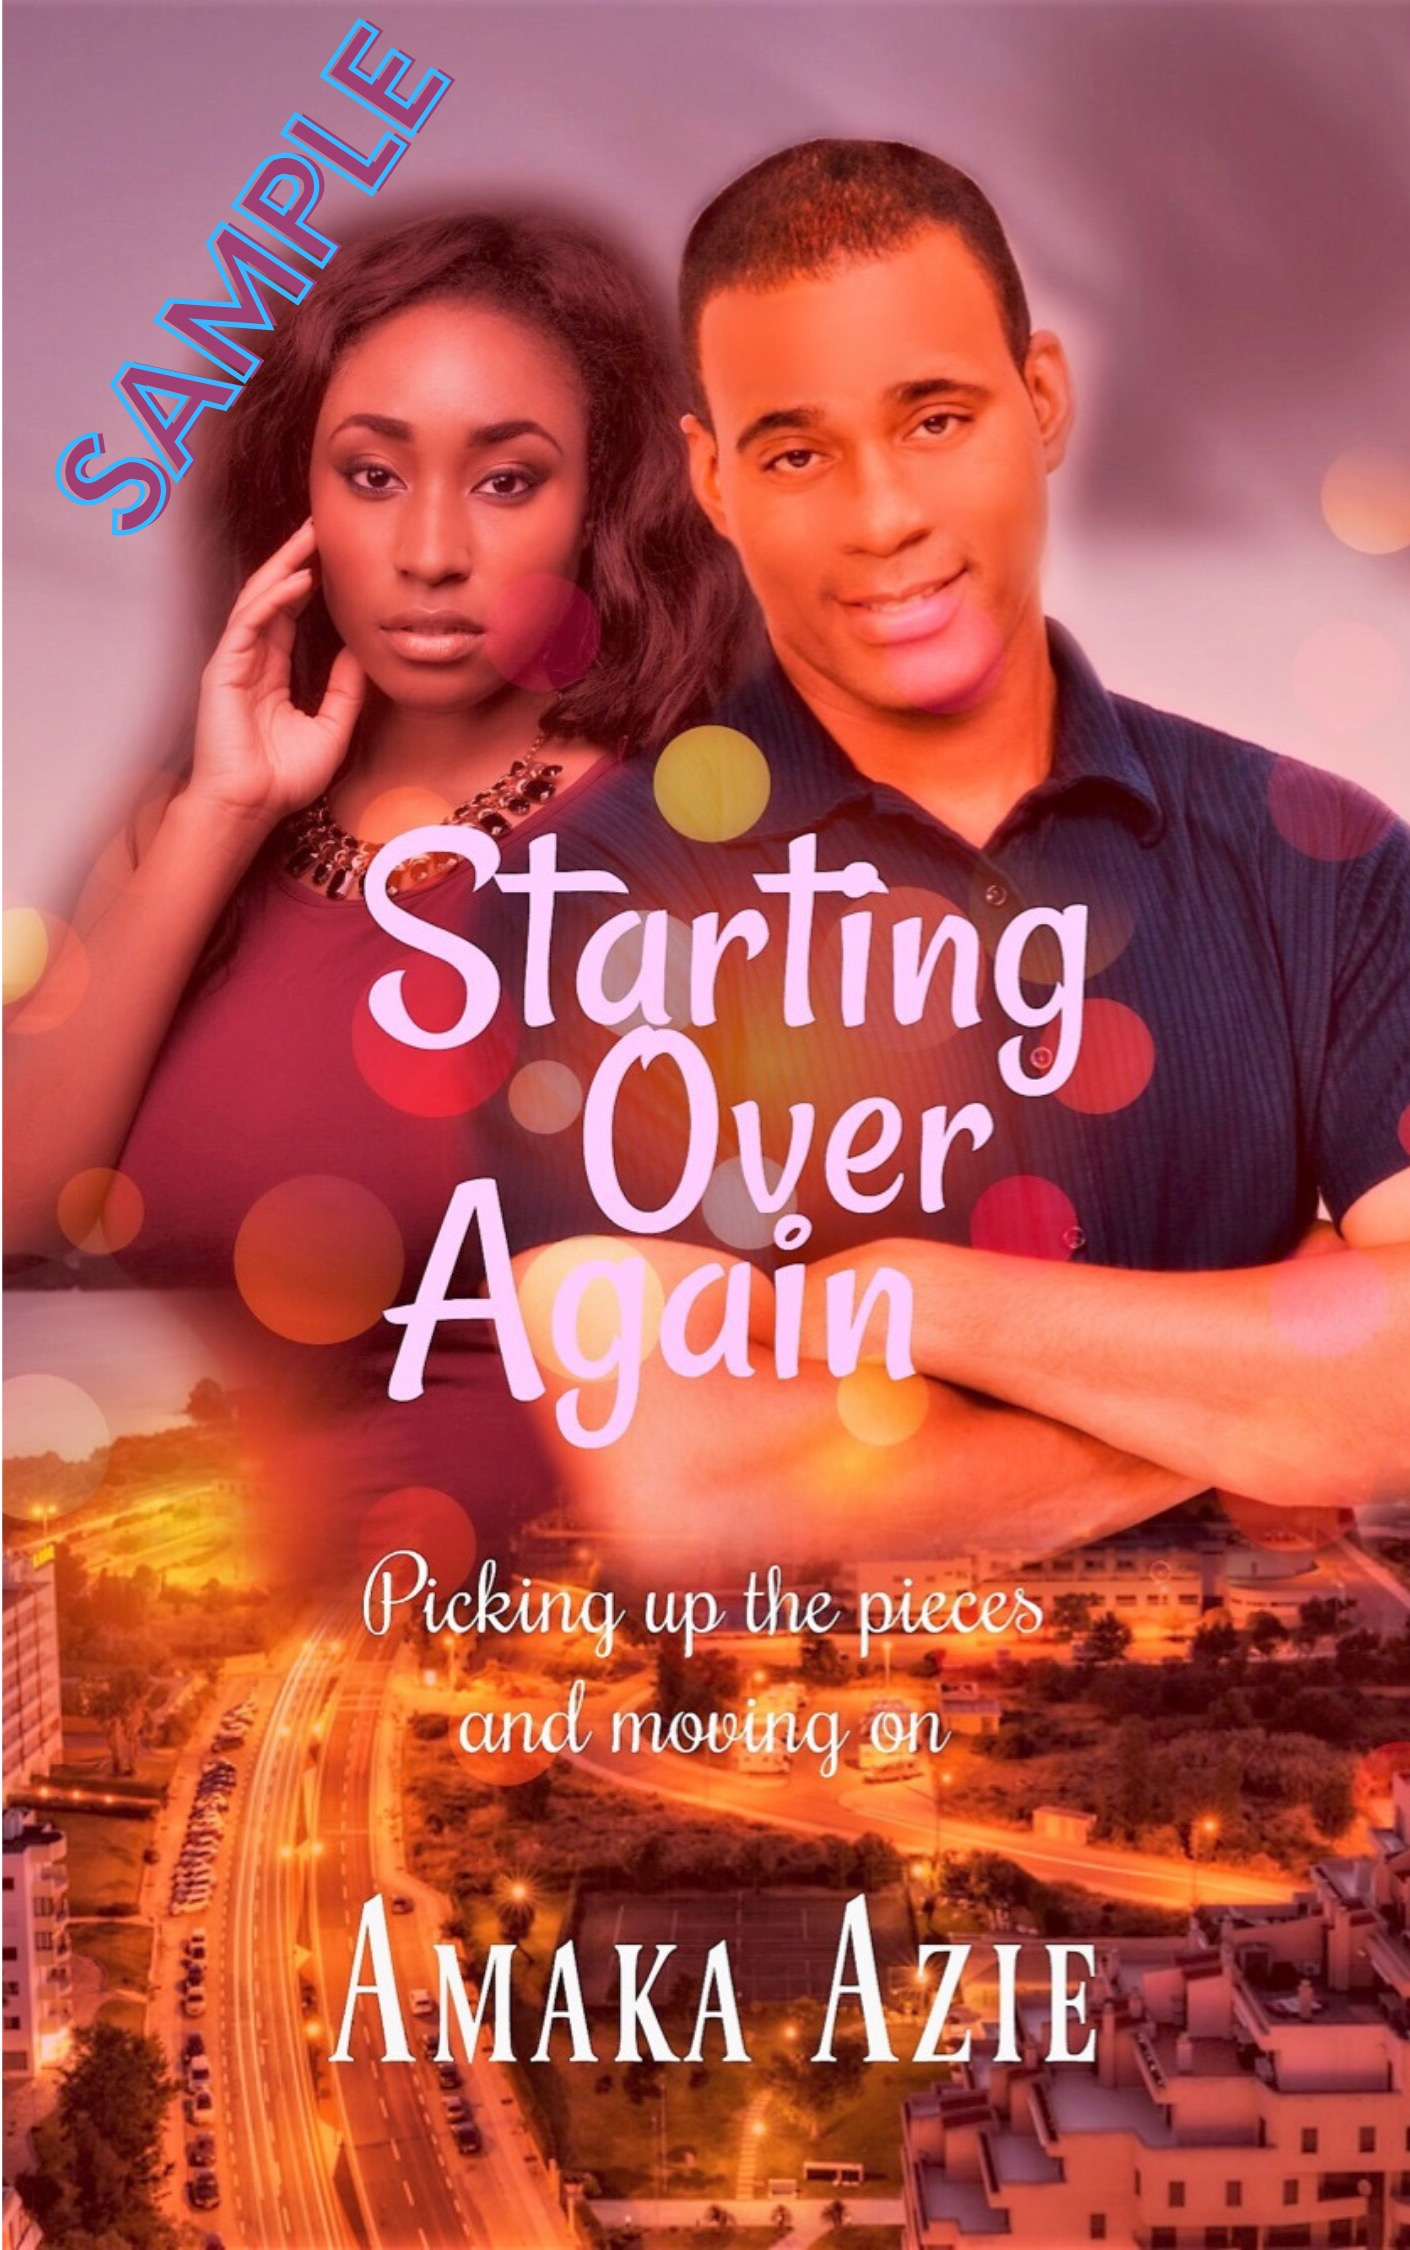 Starting Over Again (Preview)